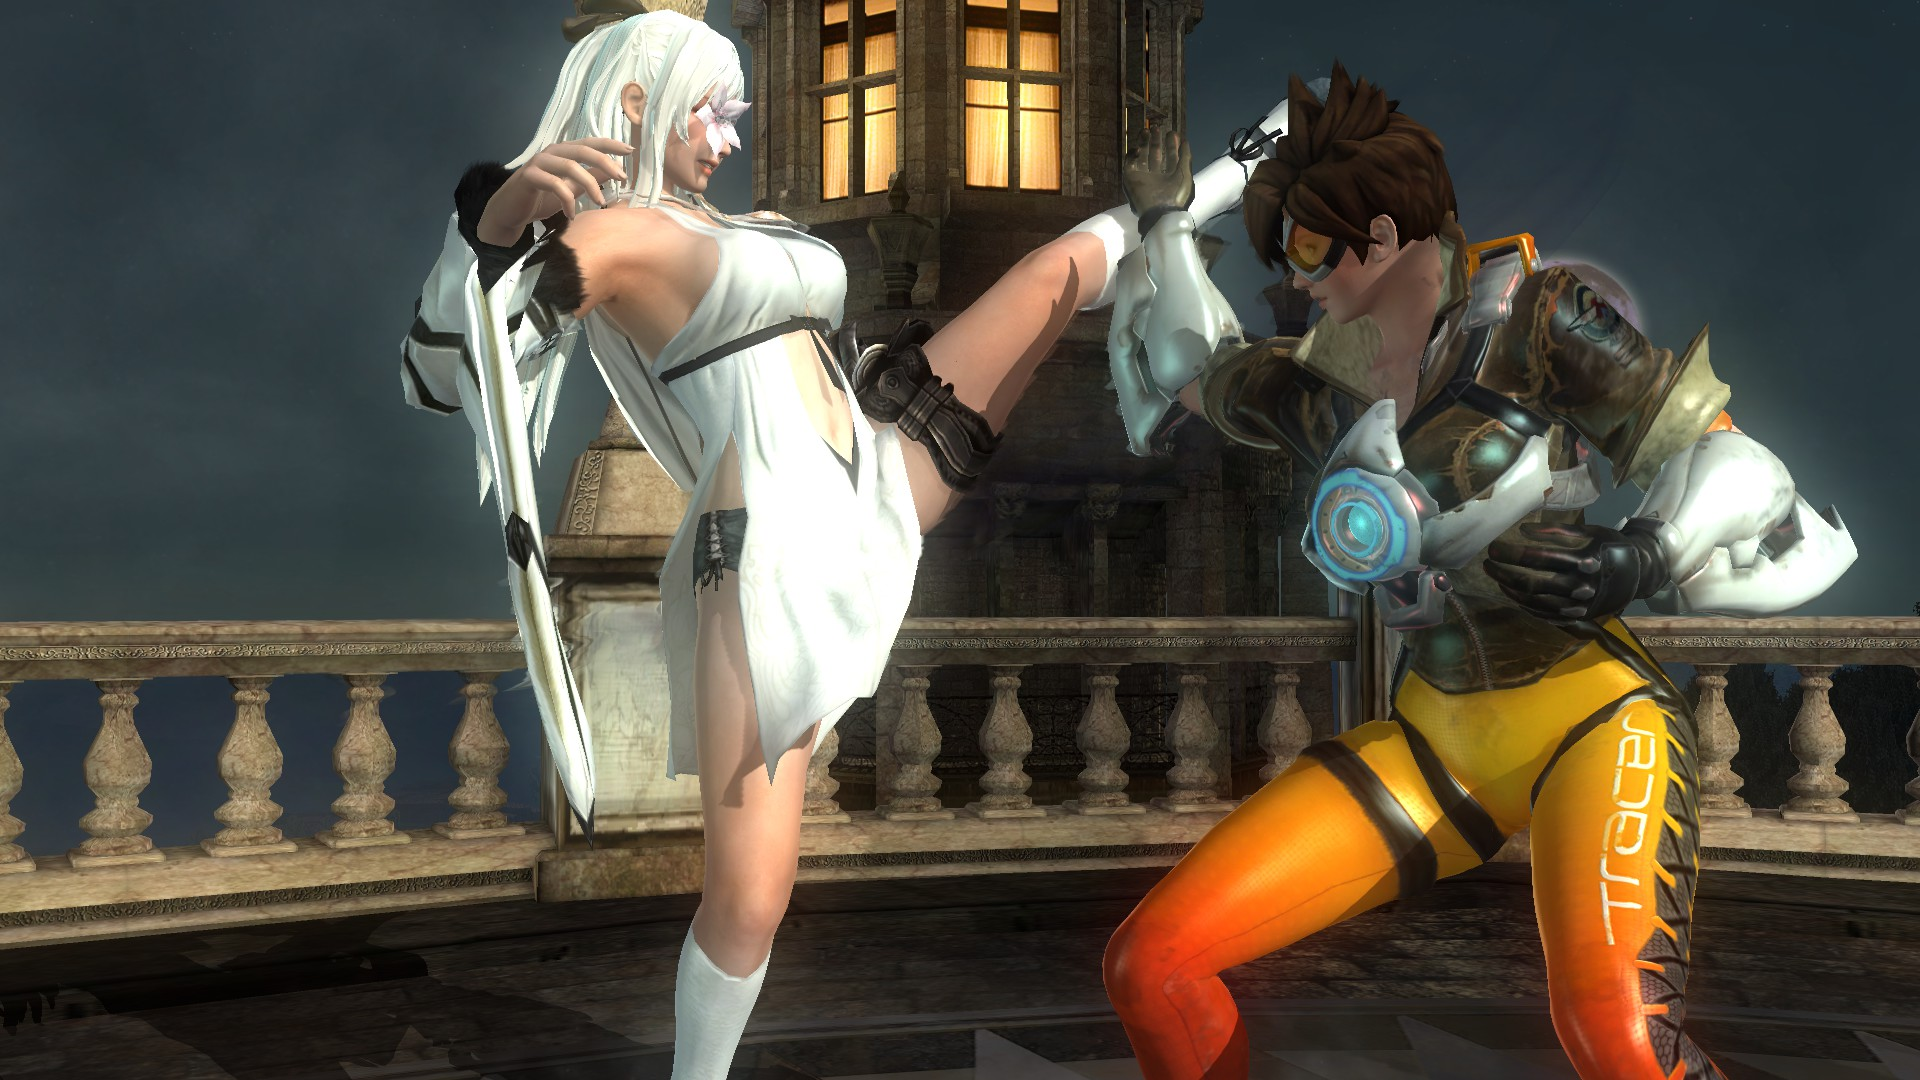 A Dead or Alive 5 mod pits the cast of Overwatch against JRPG characters.